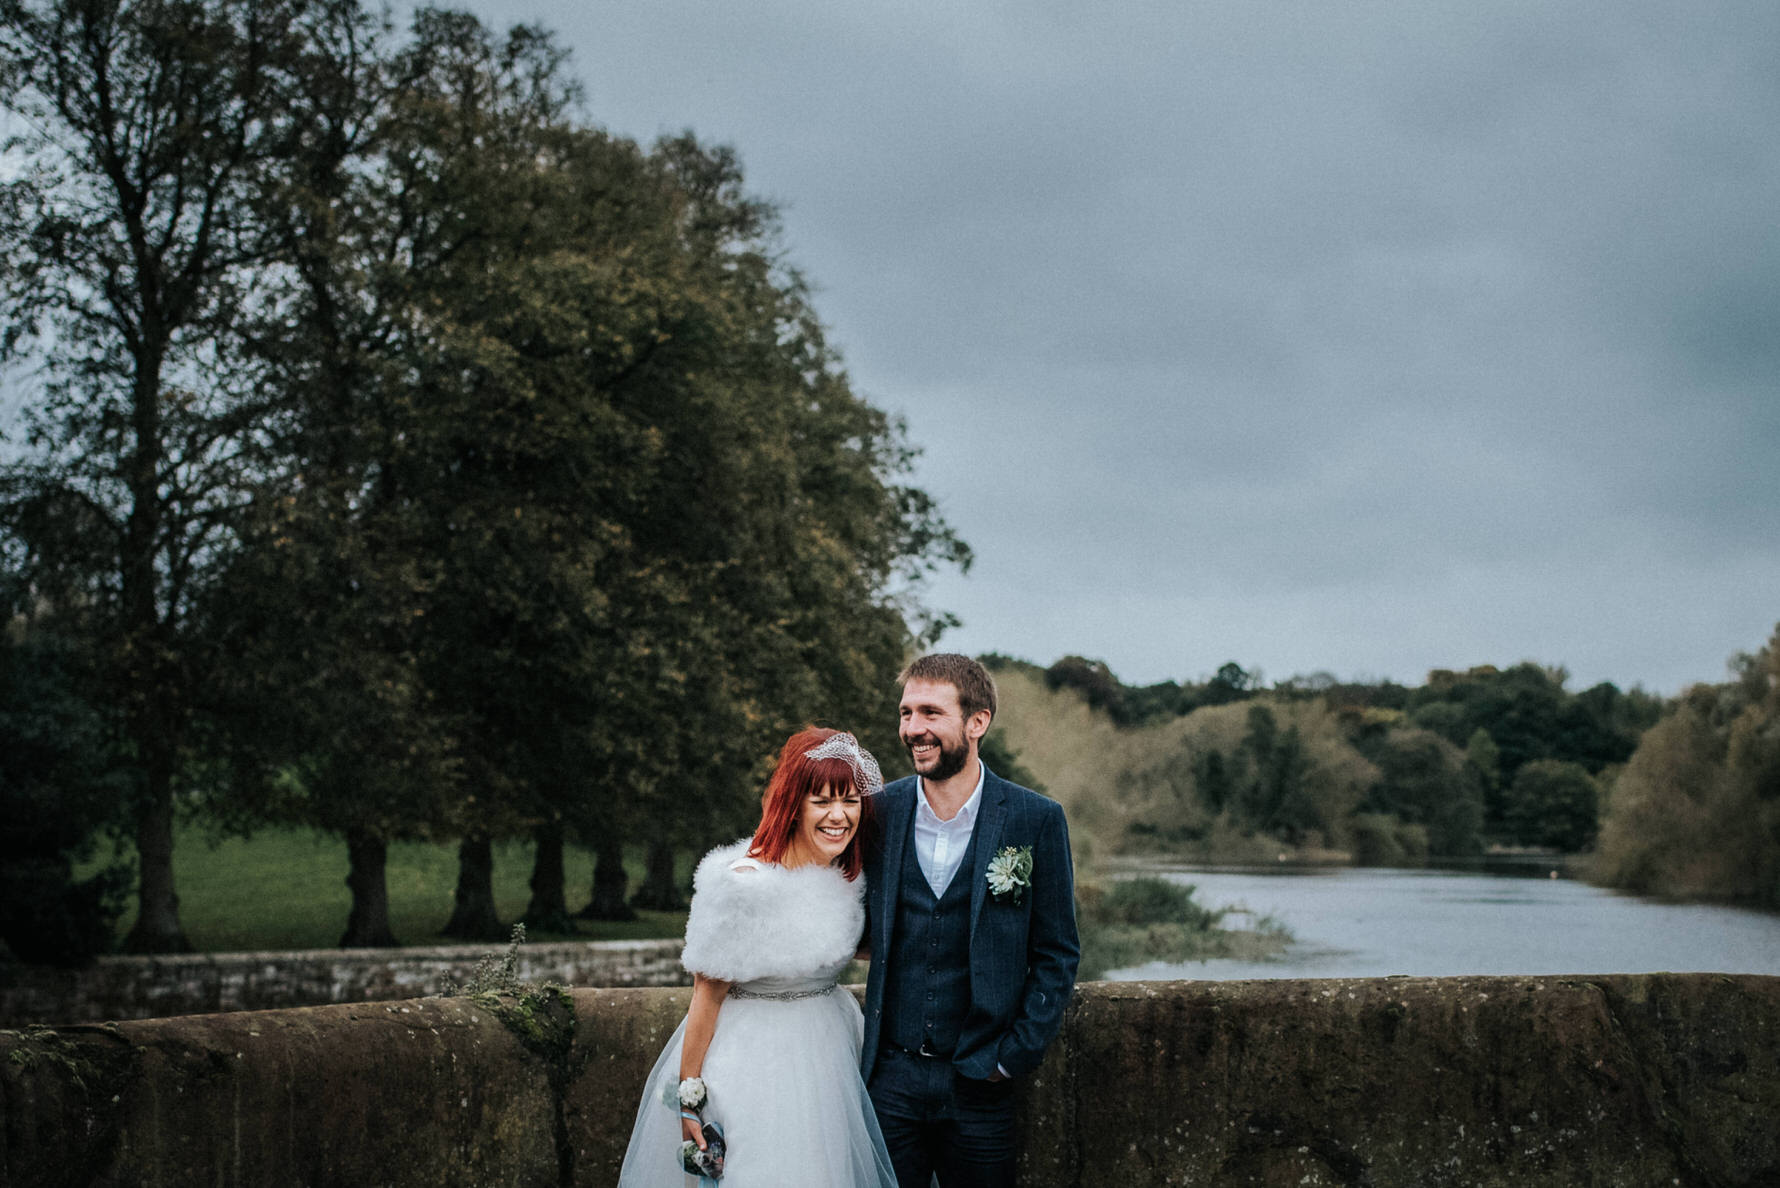 Cheshire Wedding photojournalism - A happy bride and groom on a bridge